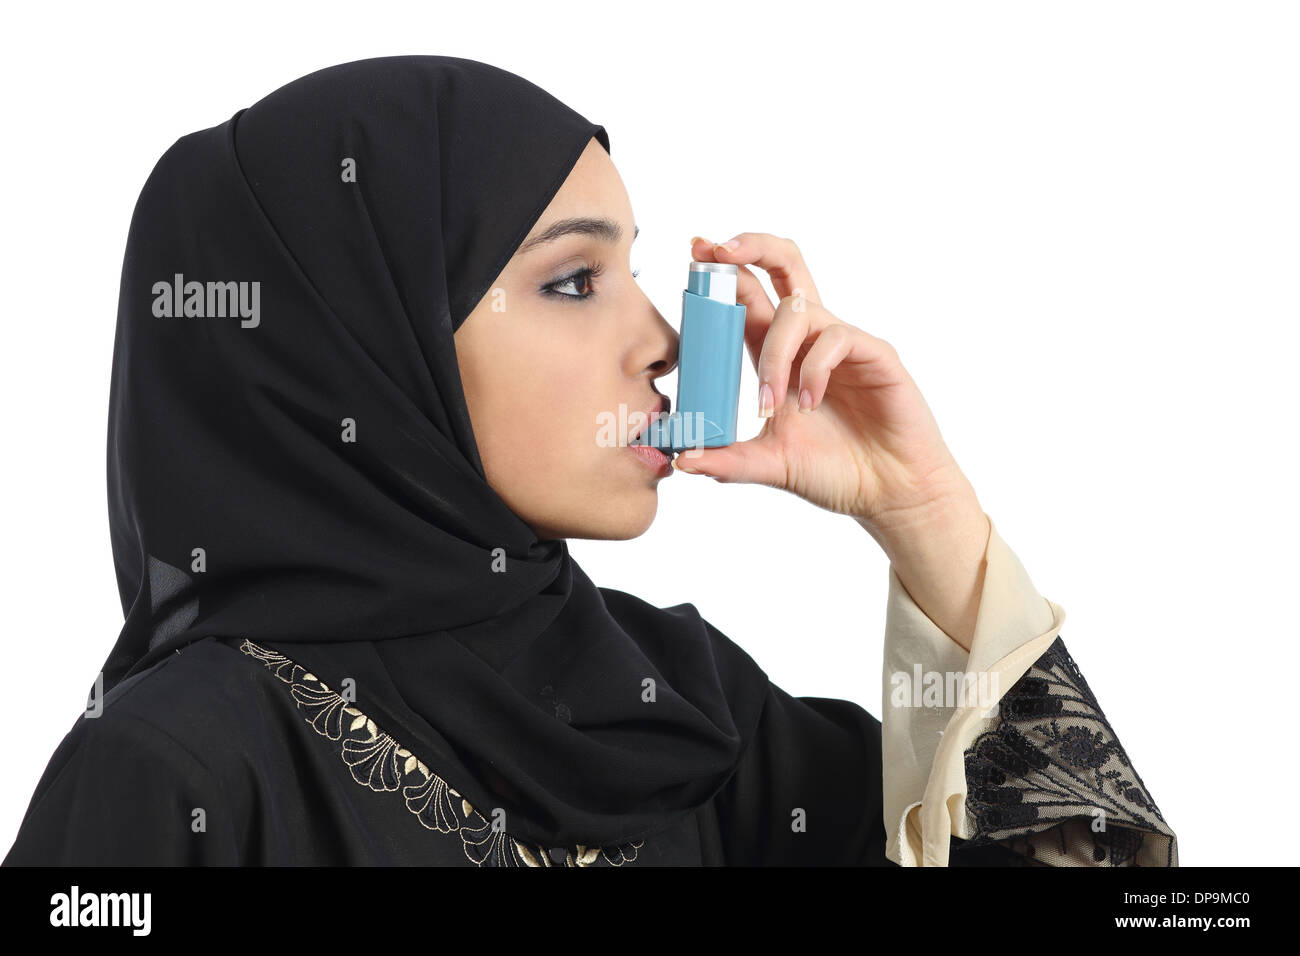 Saudi arabian asthmatic woman breathing from an asthma inhaler isolated on a white background - Stock Image